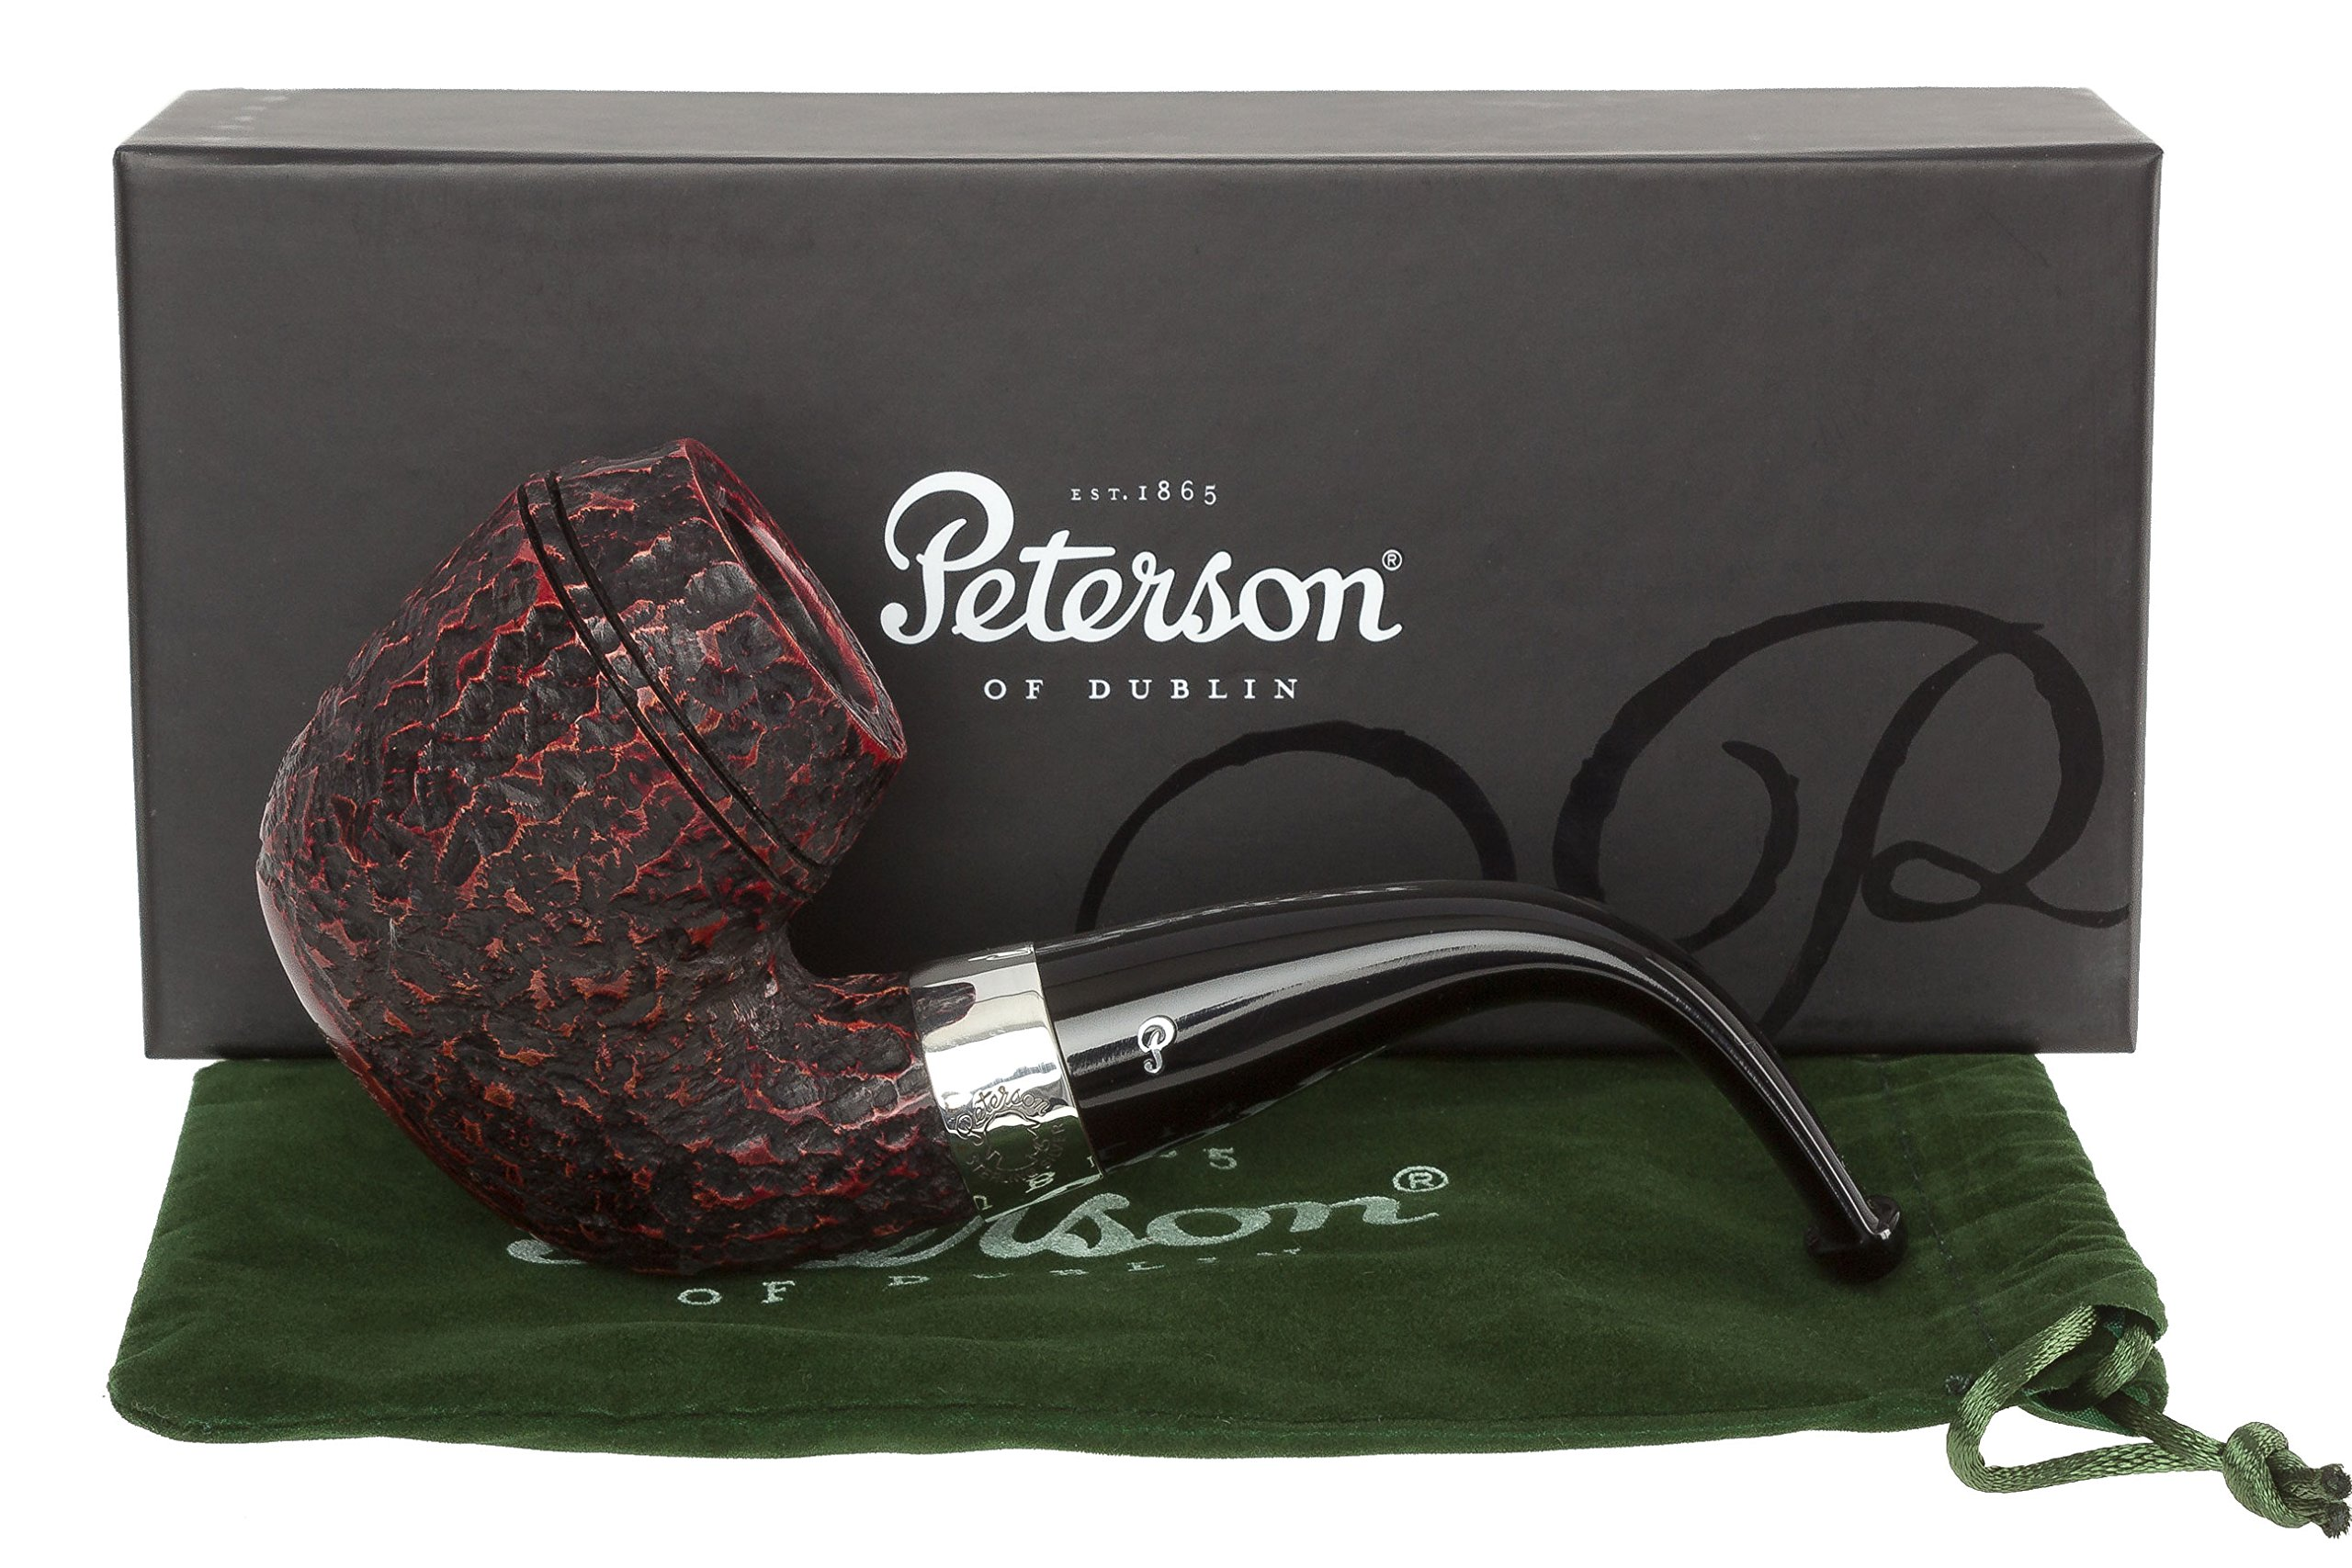 Peterson Sherlock Holmes Watson Rustic Tobacco Pipe Fishtail